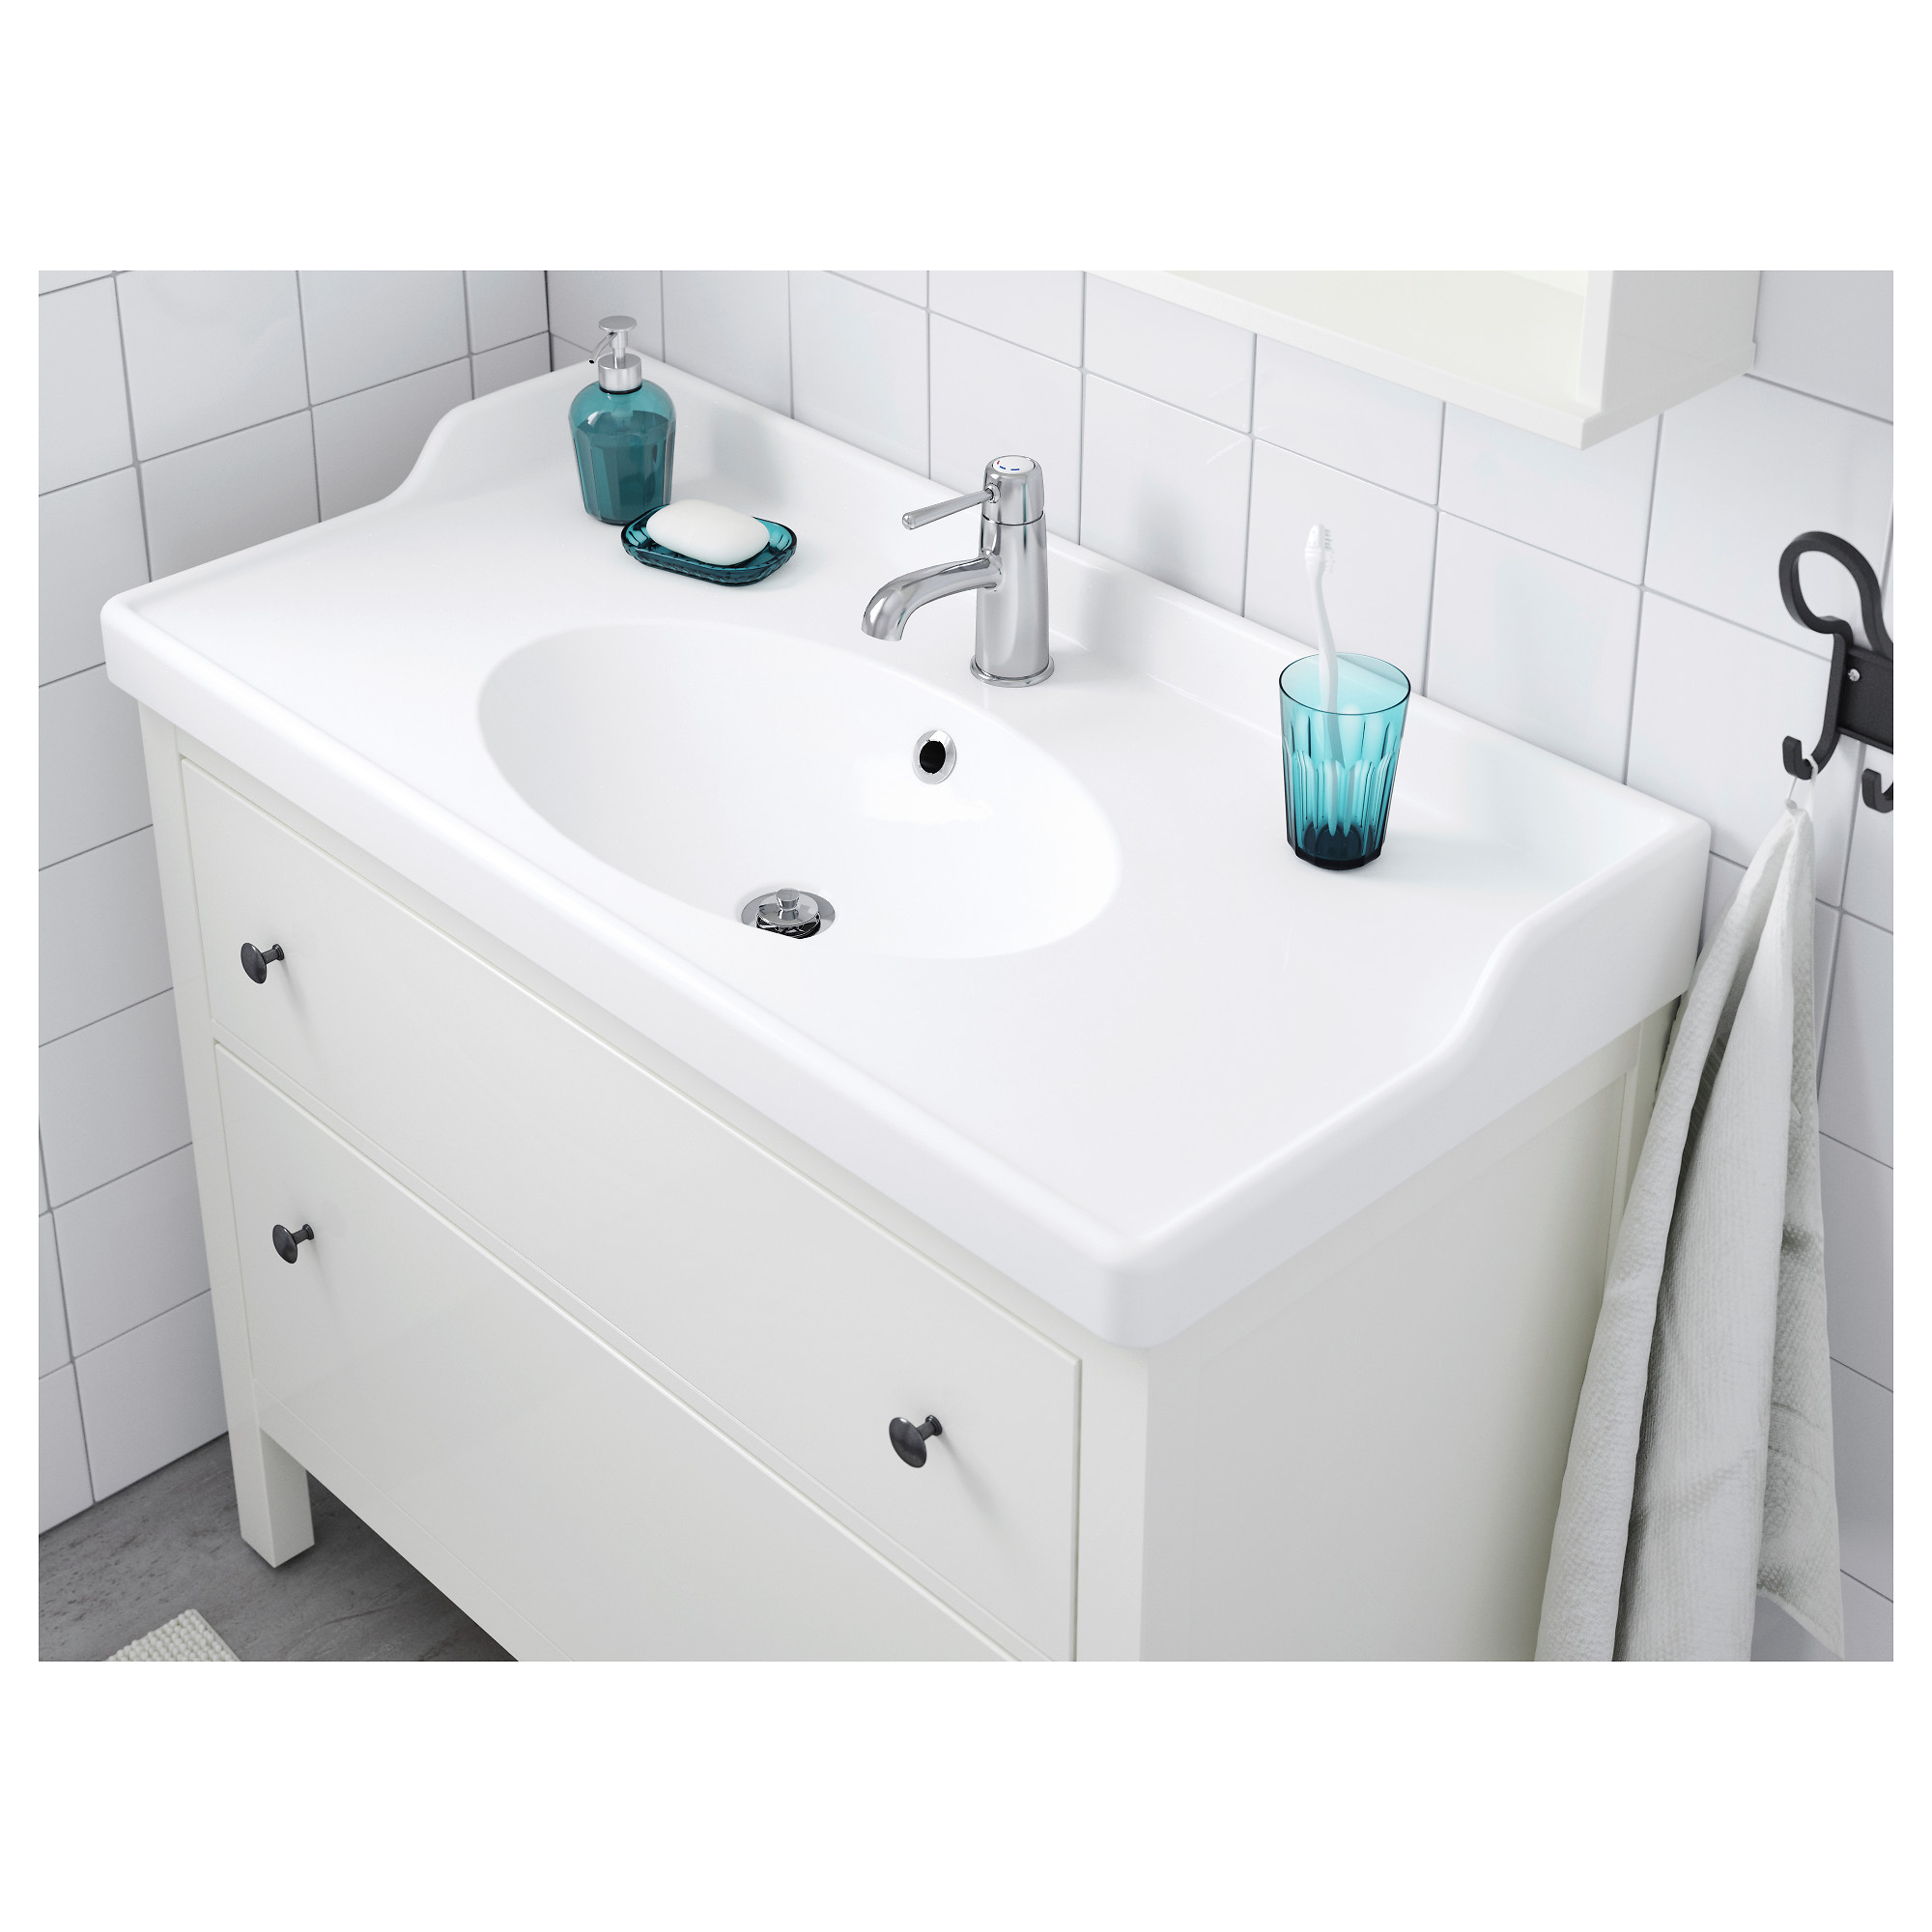 "Bathroom Sinks Ikea rÄttviken sink - 39 3/8x19 1/4x2 3/8 "" - ikea"